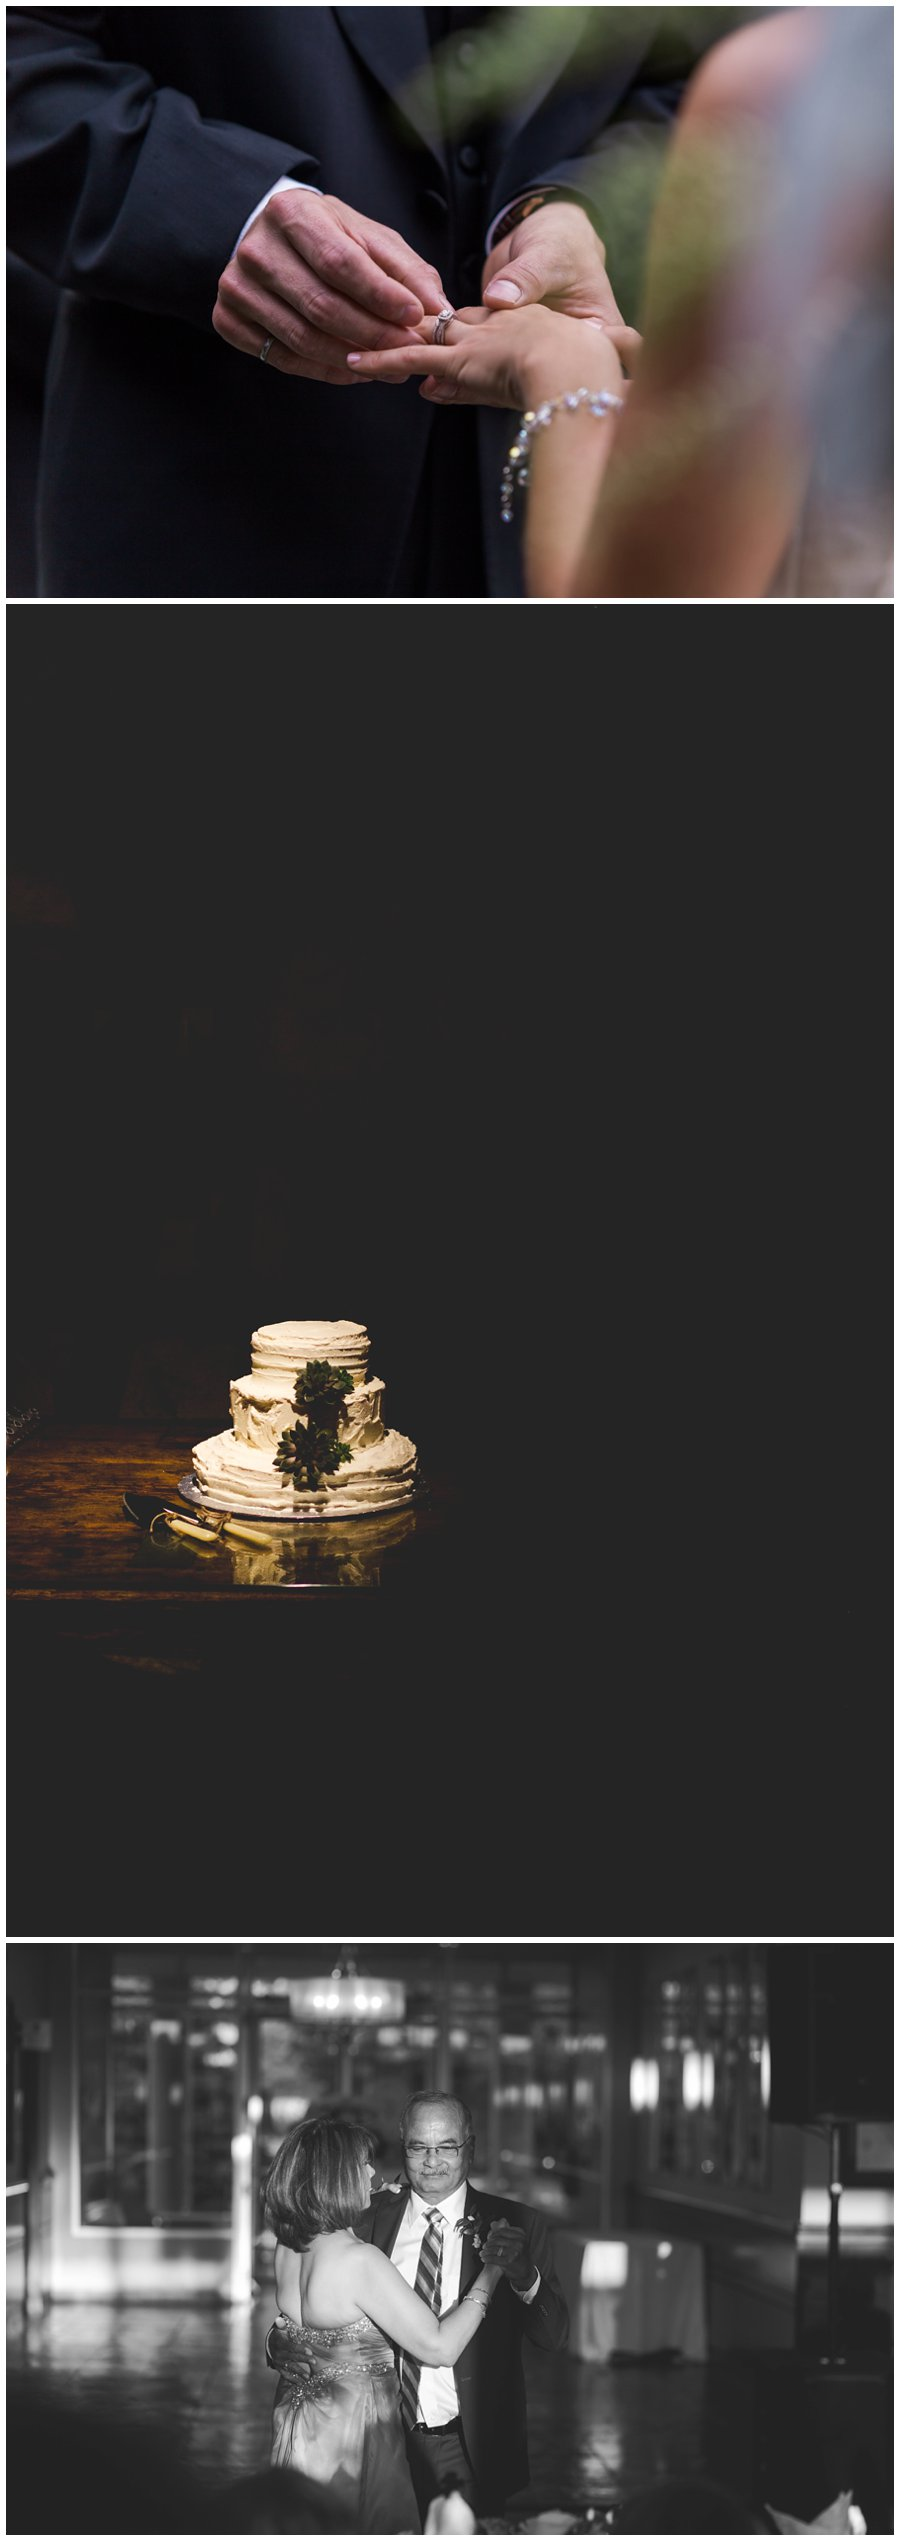 dramatic cake photo wedding